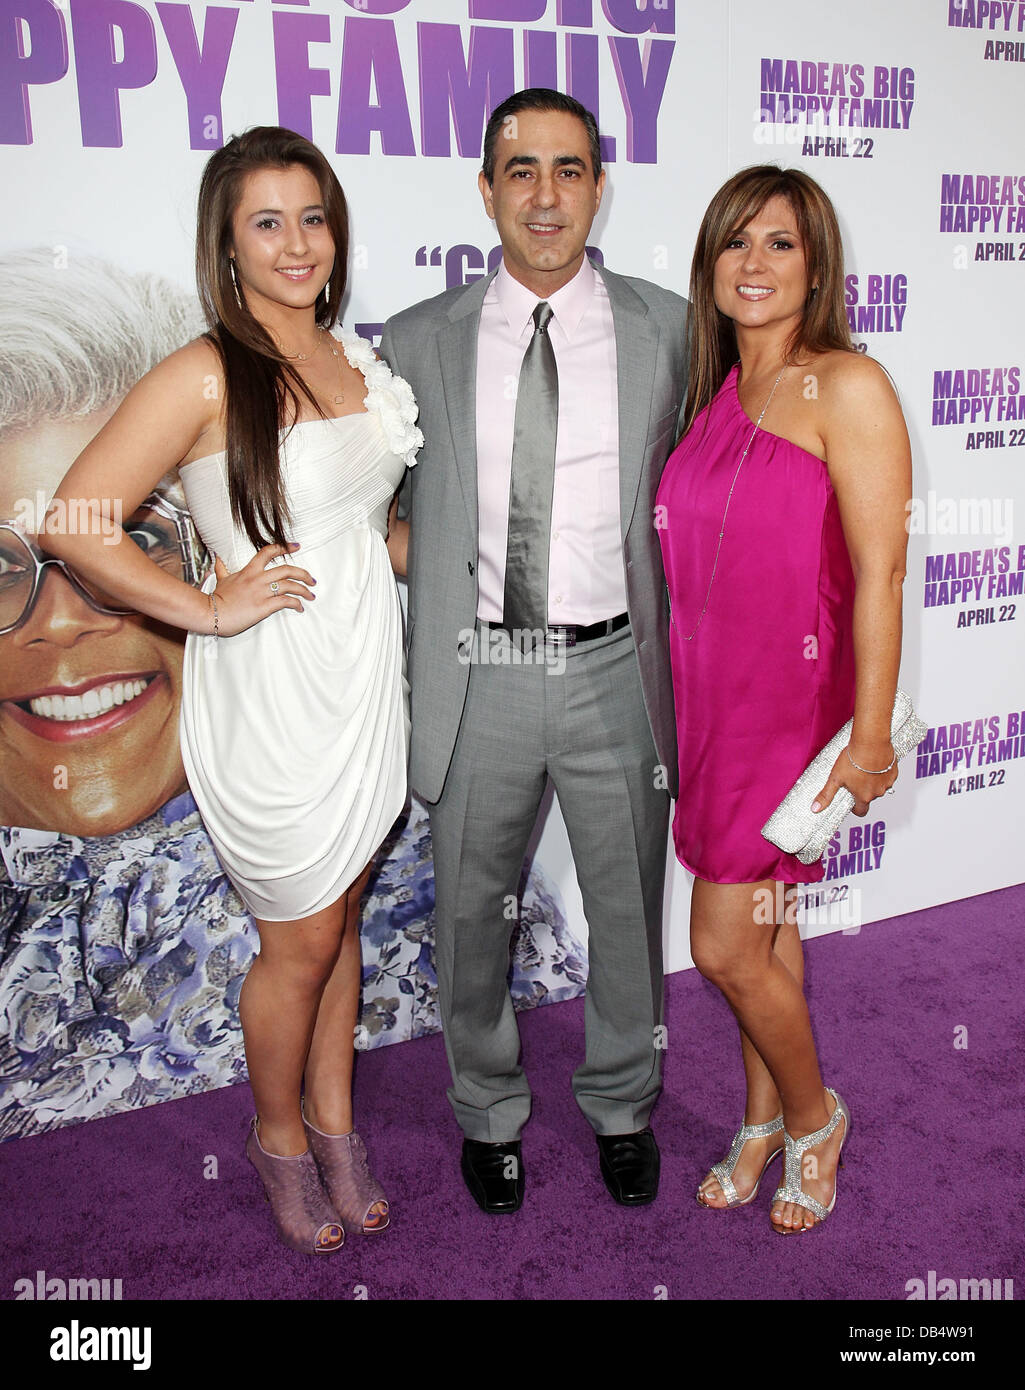 Producer Ozzie Areu and family Los Angeles Premiere of 'Tyler Perry's Madea's Big Happy Family' - Stock Image